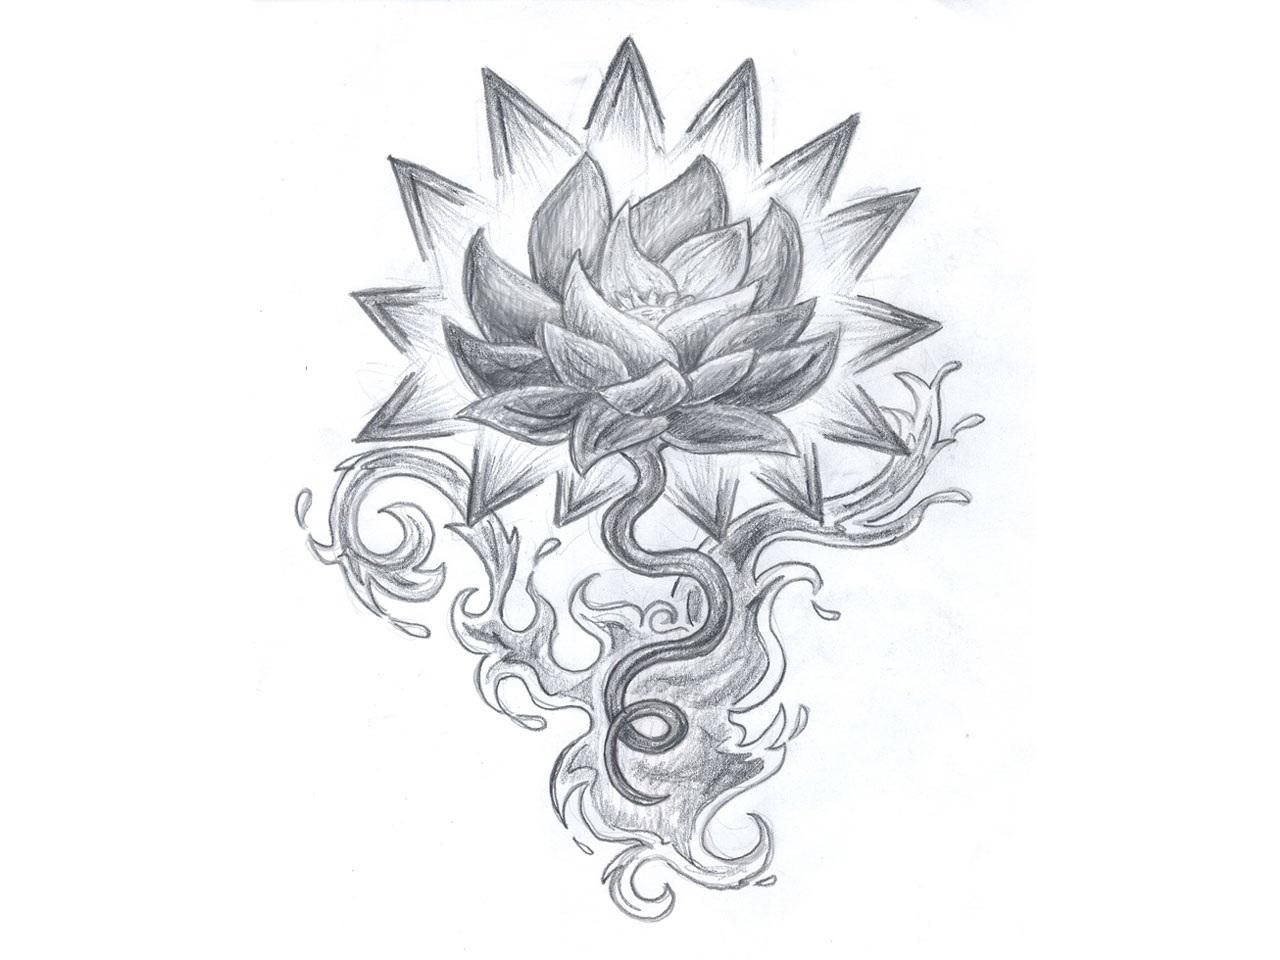 73 lotus flower tattoos designs tattoos pinterest flower lotus flower tattoo drawing izmirmasajfo